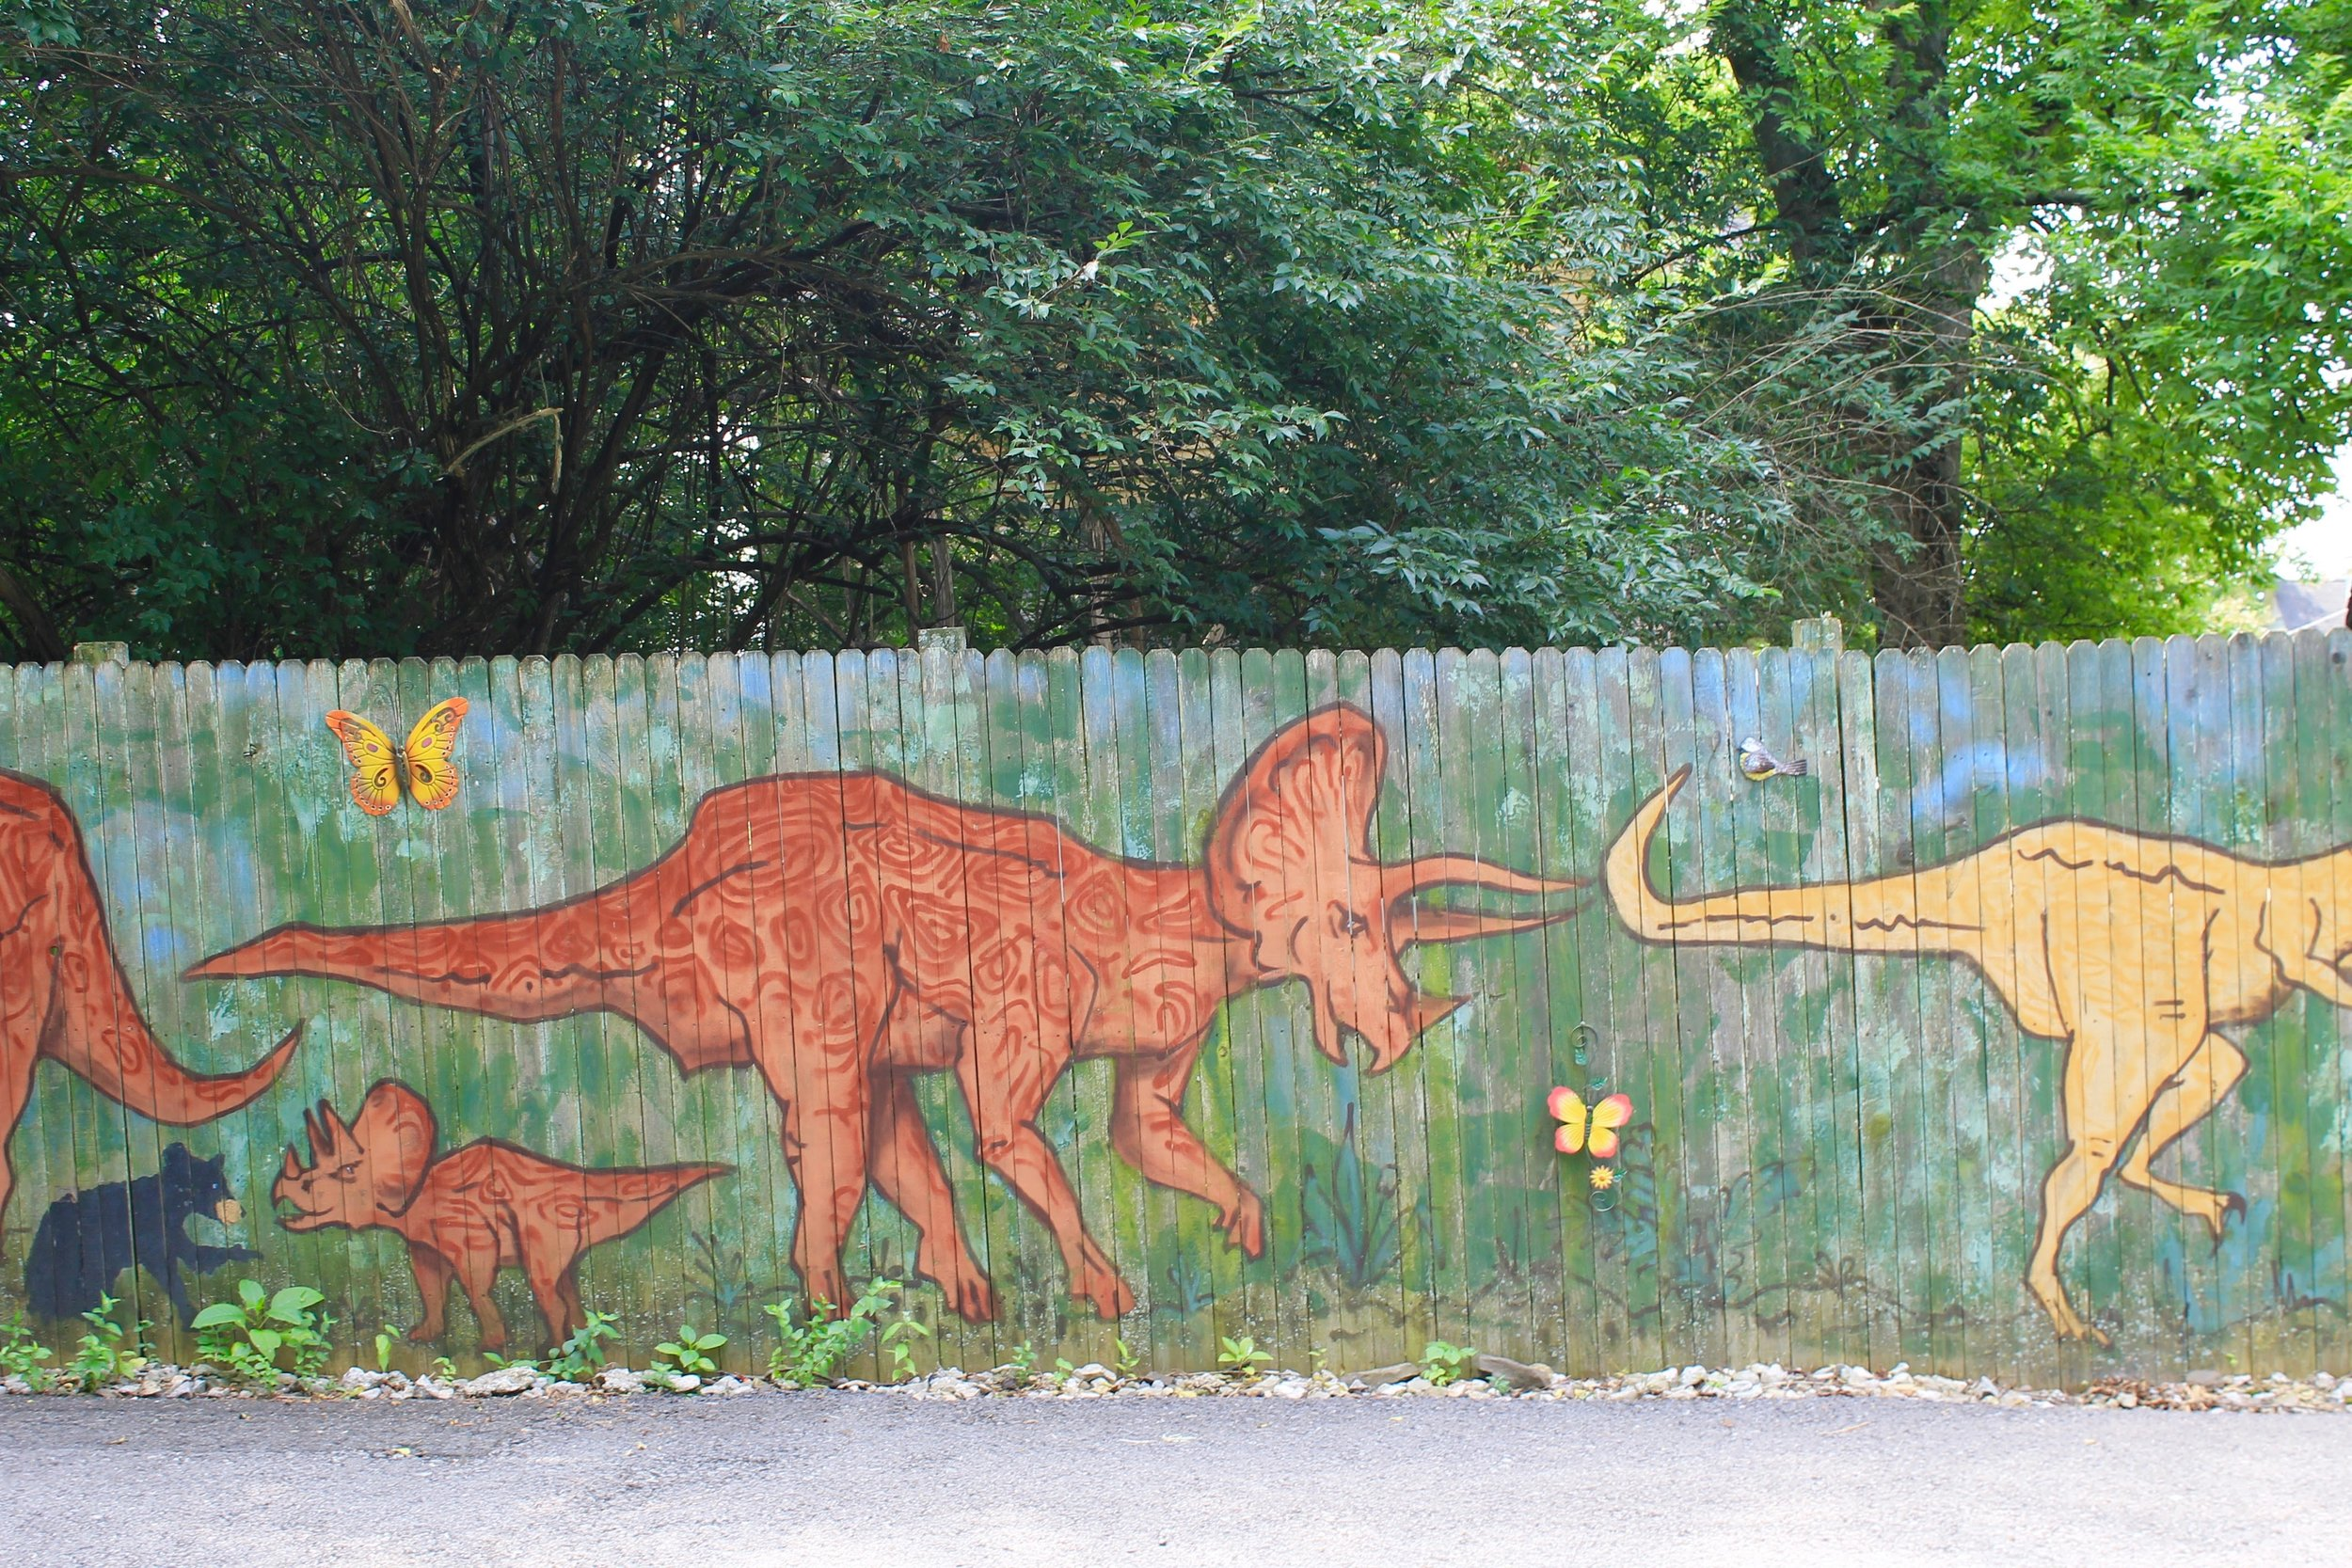 Back fence in the alley way behind the Loy house. Dinosaur mural by